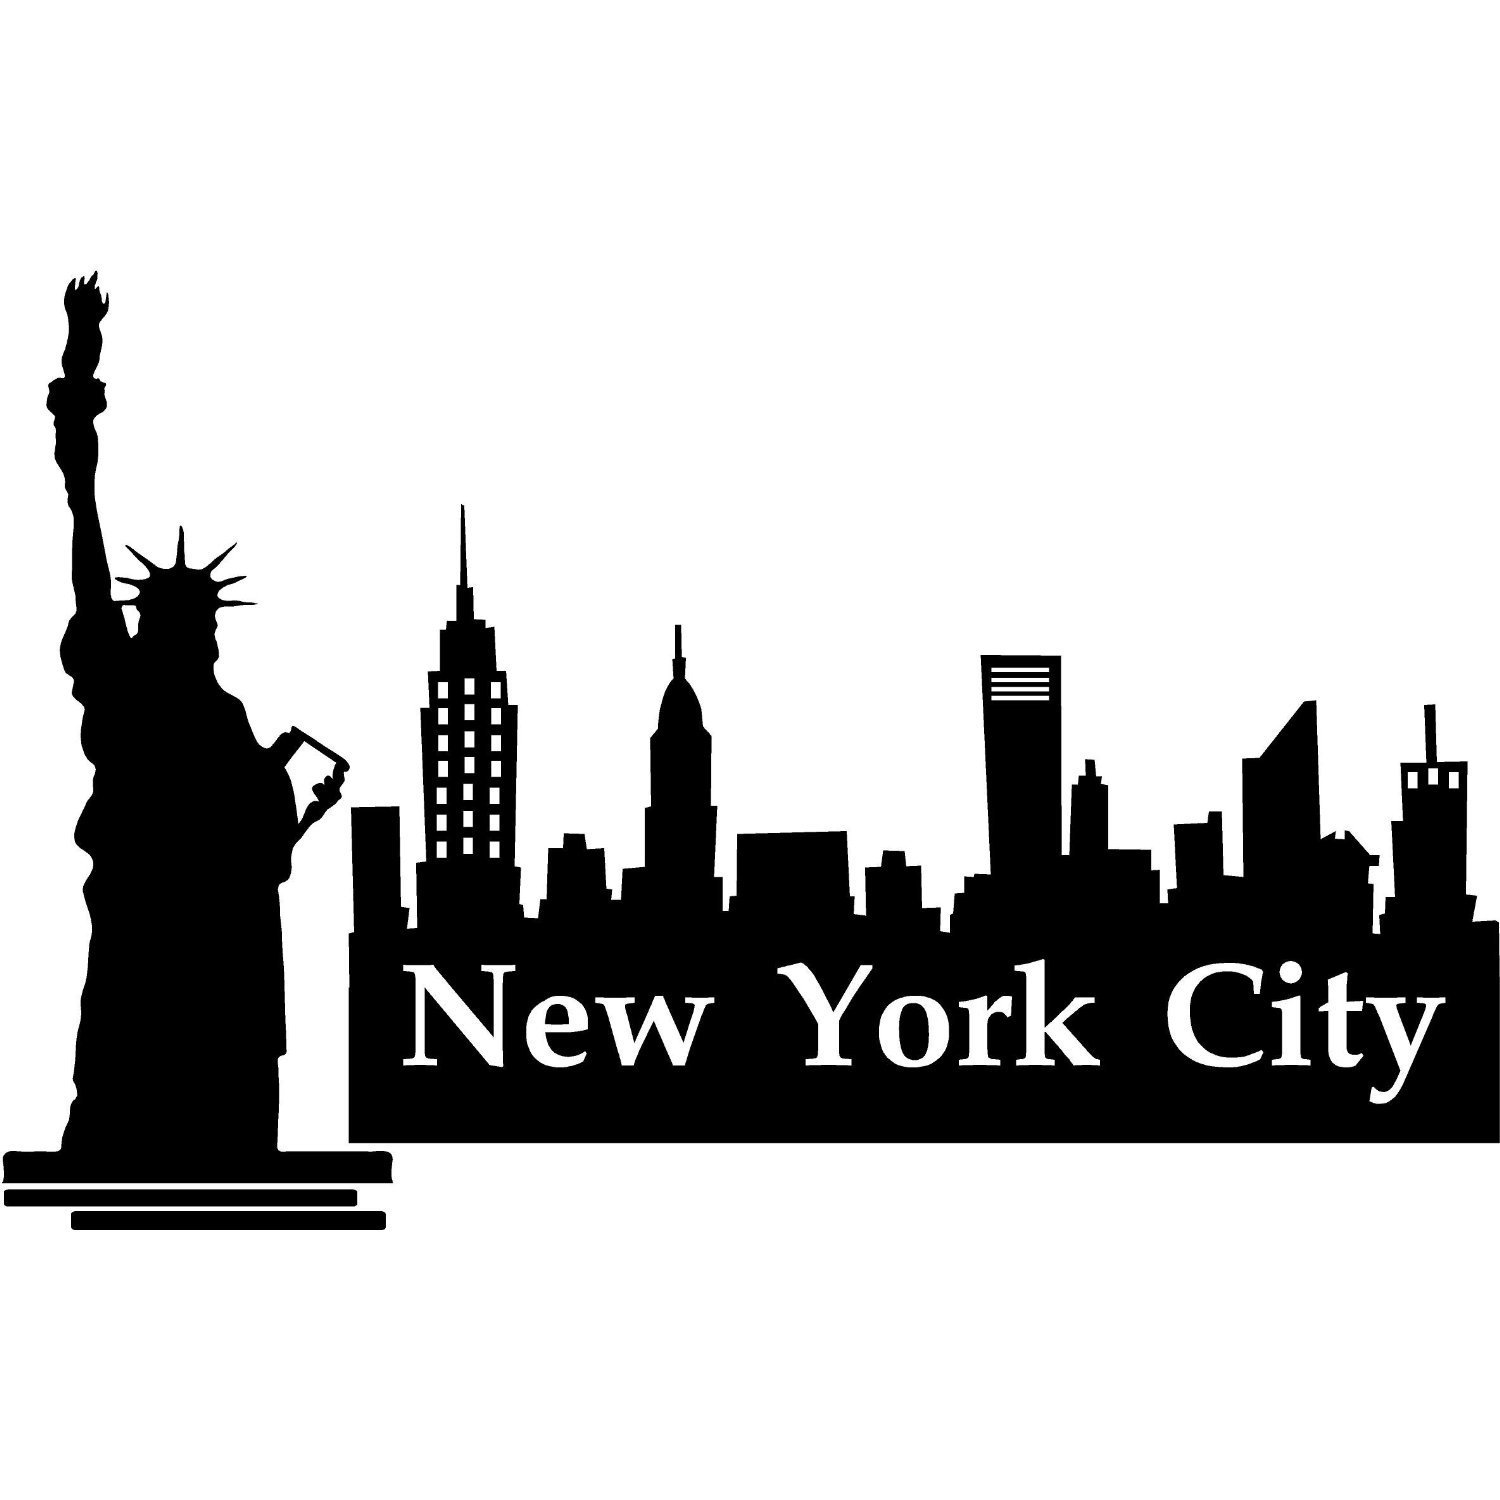 Statue Of Liberty clipart new york city Free saying Of  Clip